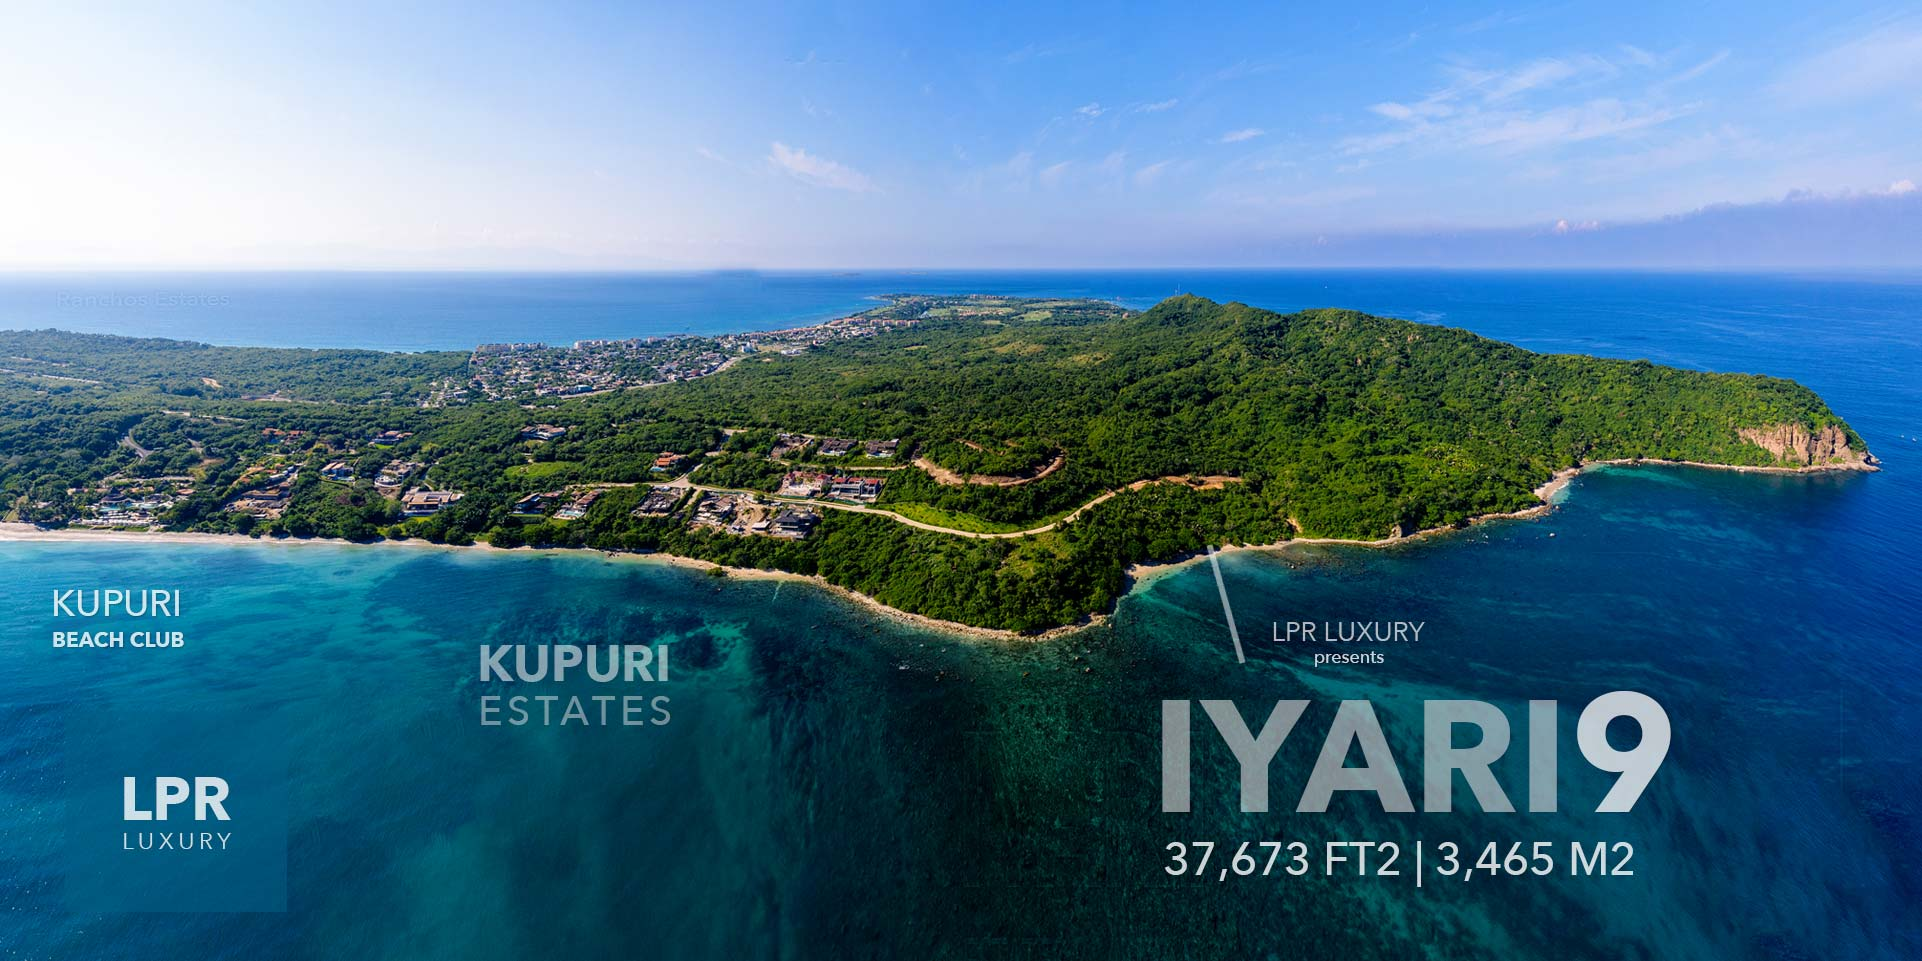 Iyari Estates 9 - Punta Mita Resort homesite building lot for luxury homes